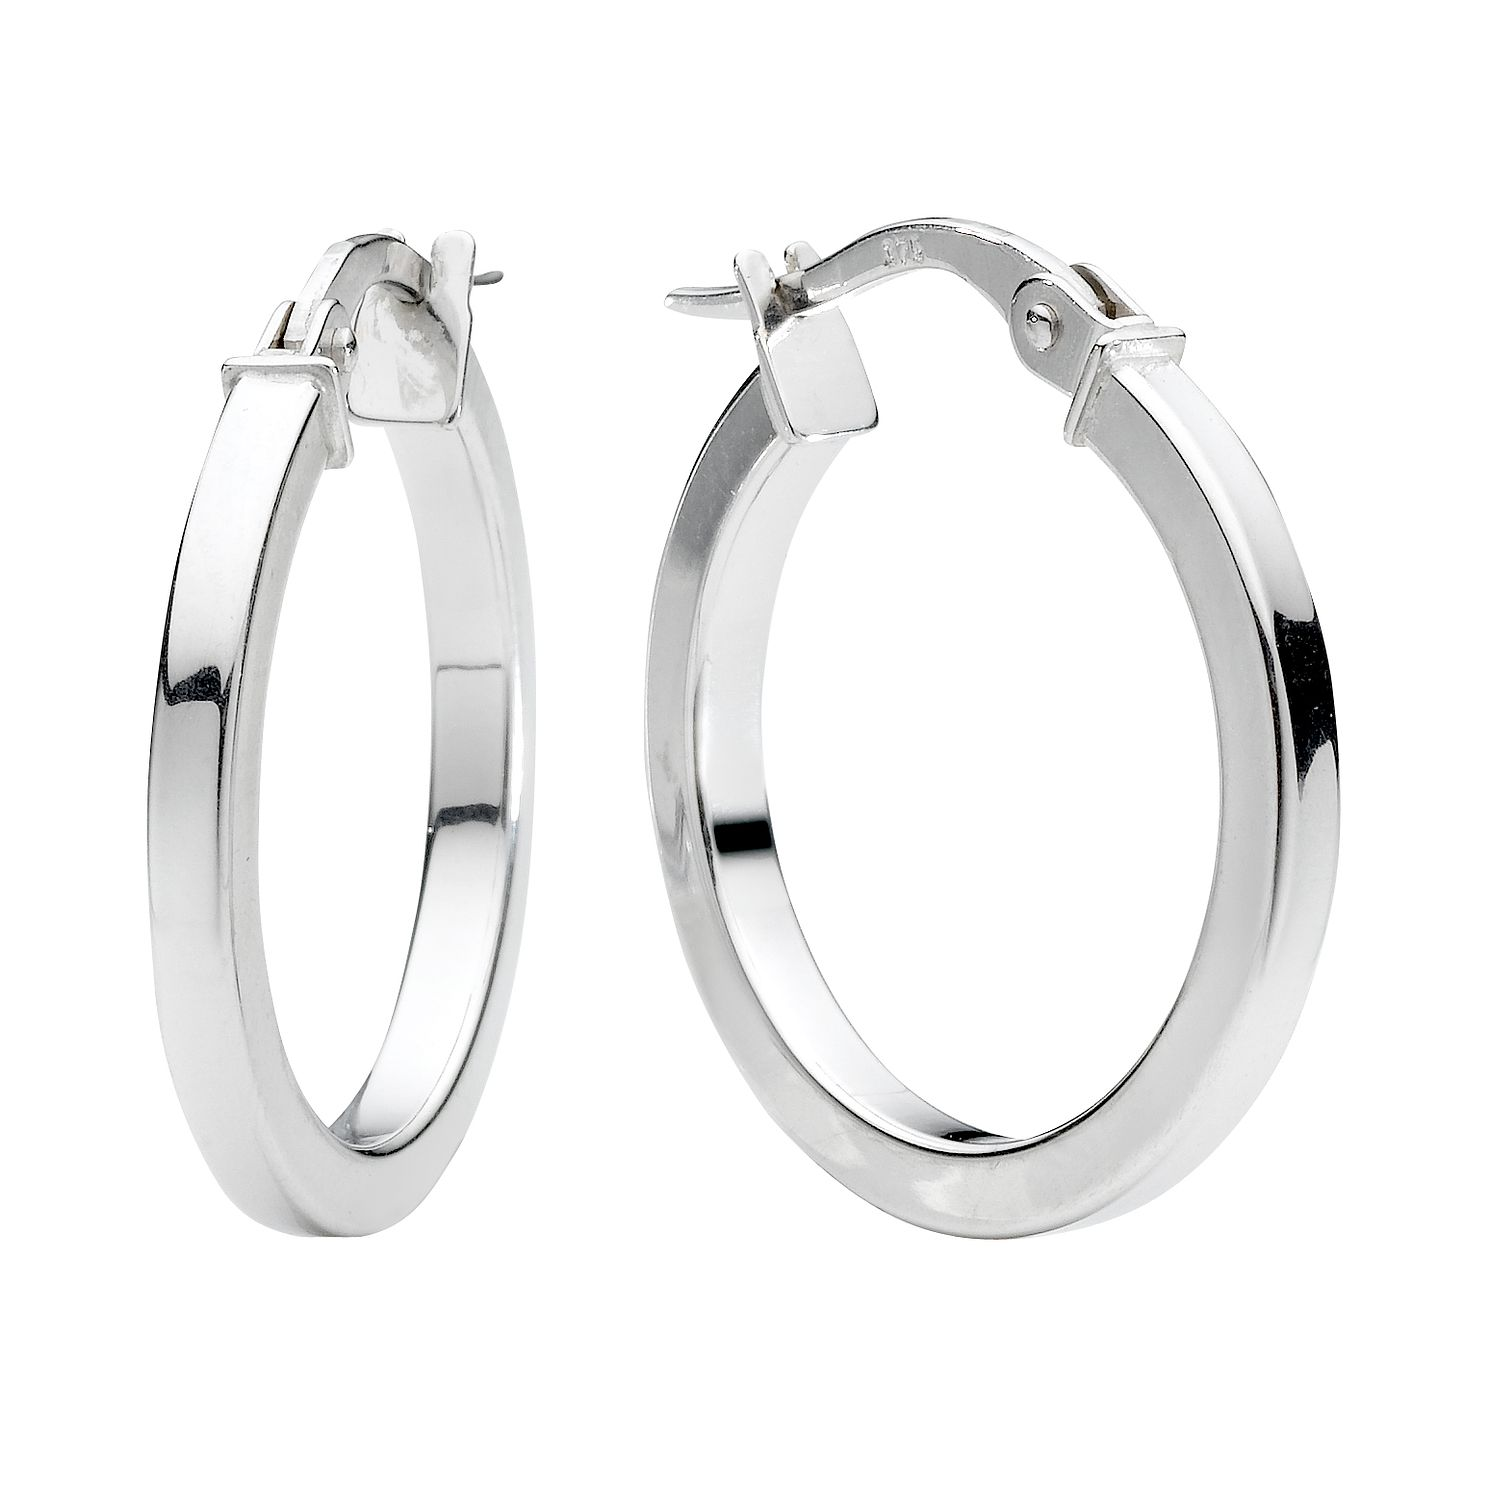 9ct White Gold 15mm Hoop Earrings - Product number 4467604